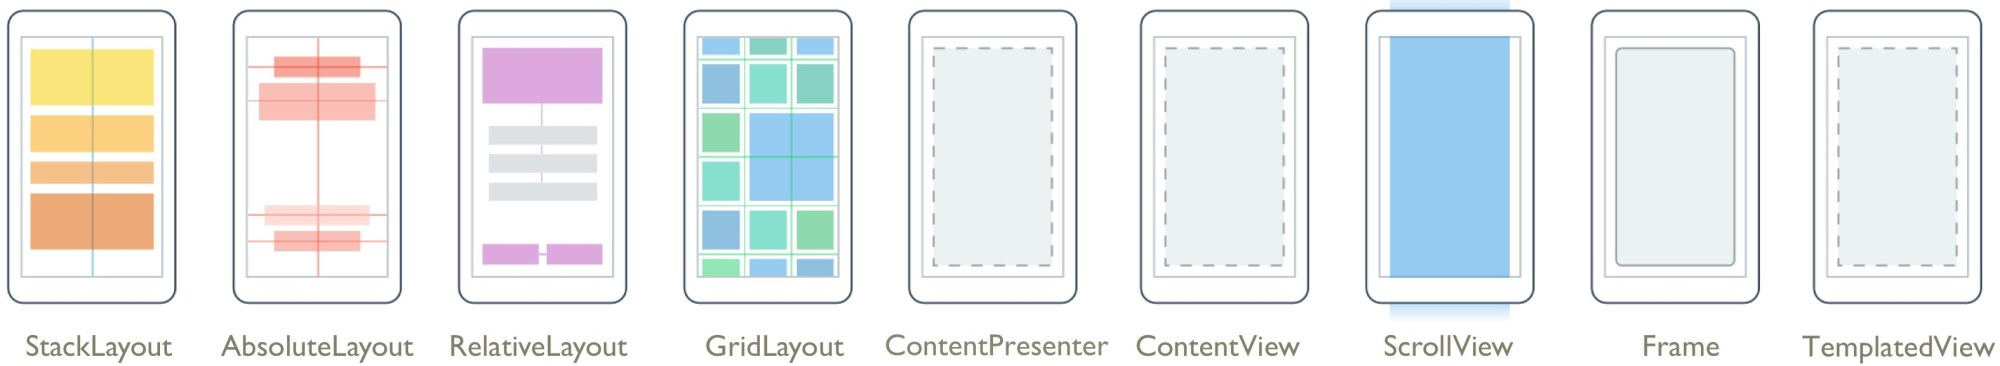 hight resolution of a layout contains logic xaml and code behind in c to set the position and size of child controls and elements in applications